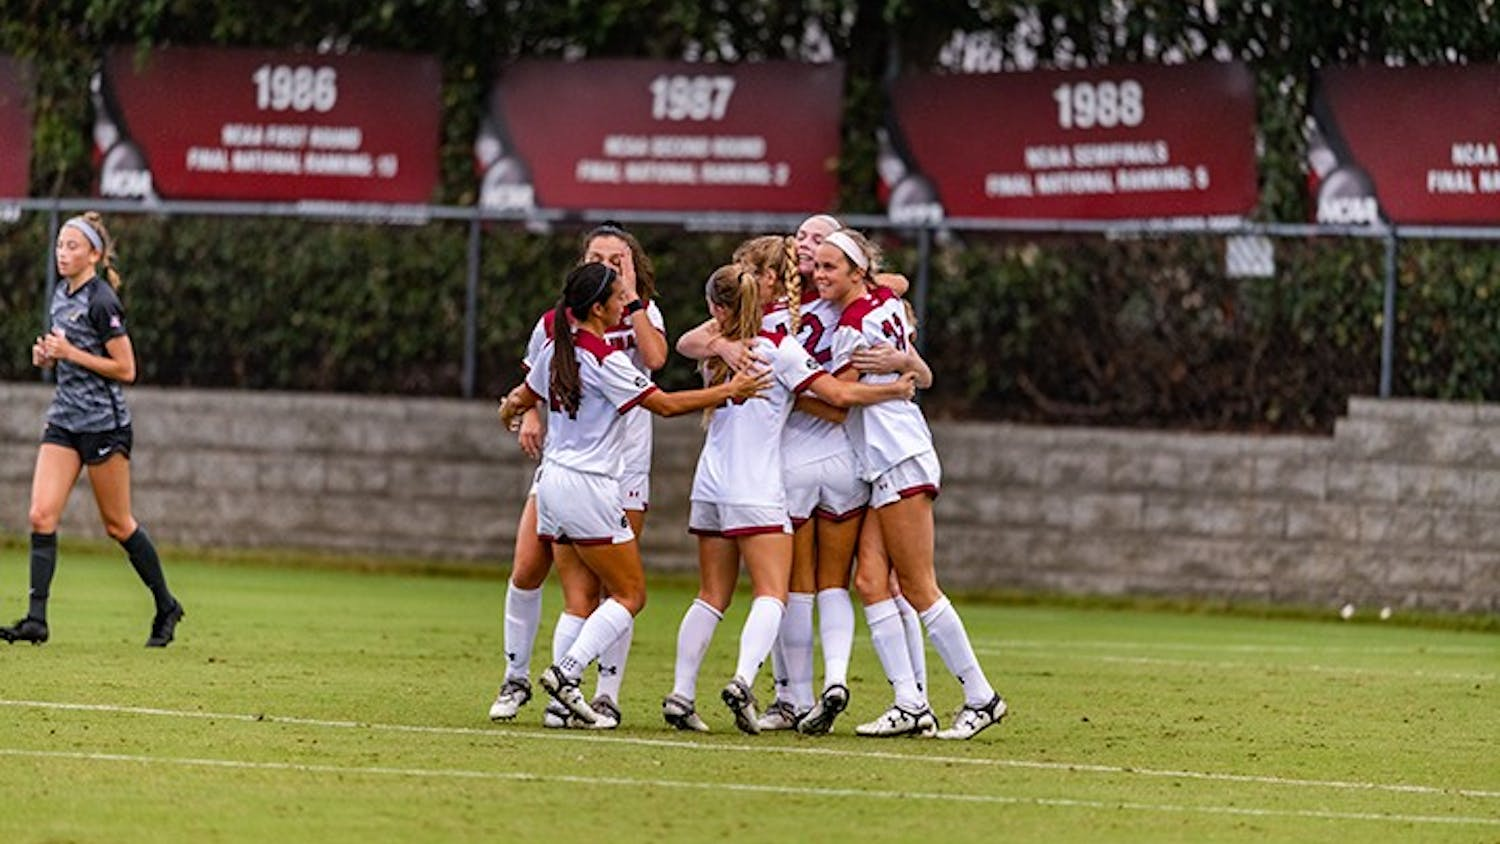 Members of the South Carolina women's soccer team celebrate after a goal in the win against Missouri on Sunday. The win was the first of the season for the Gamecocks.